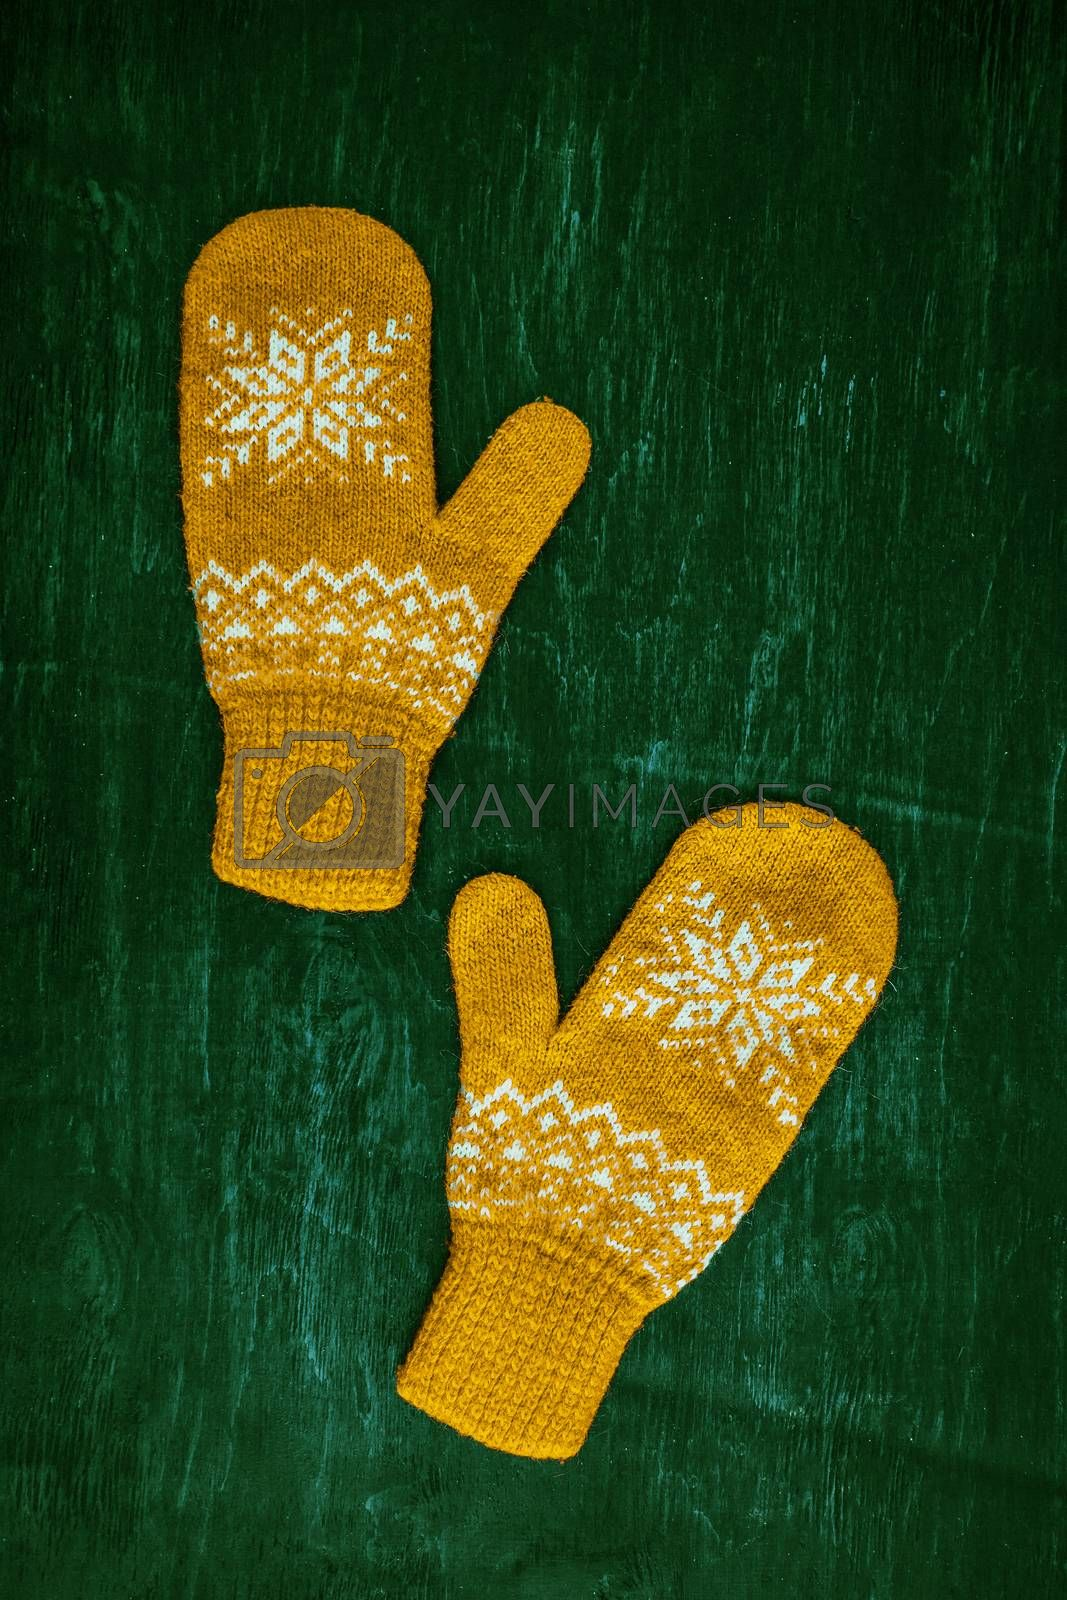 Royalty free image of a pair of yellow orange knitted mittens on a dark blue-green-brown wooden by Tanacha